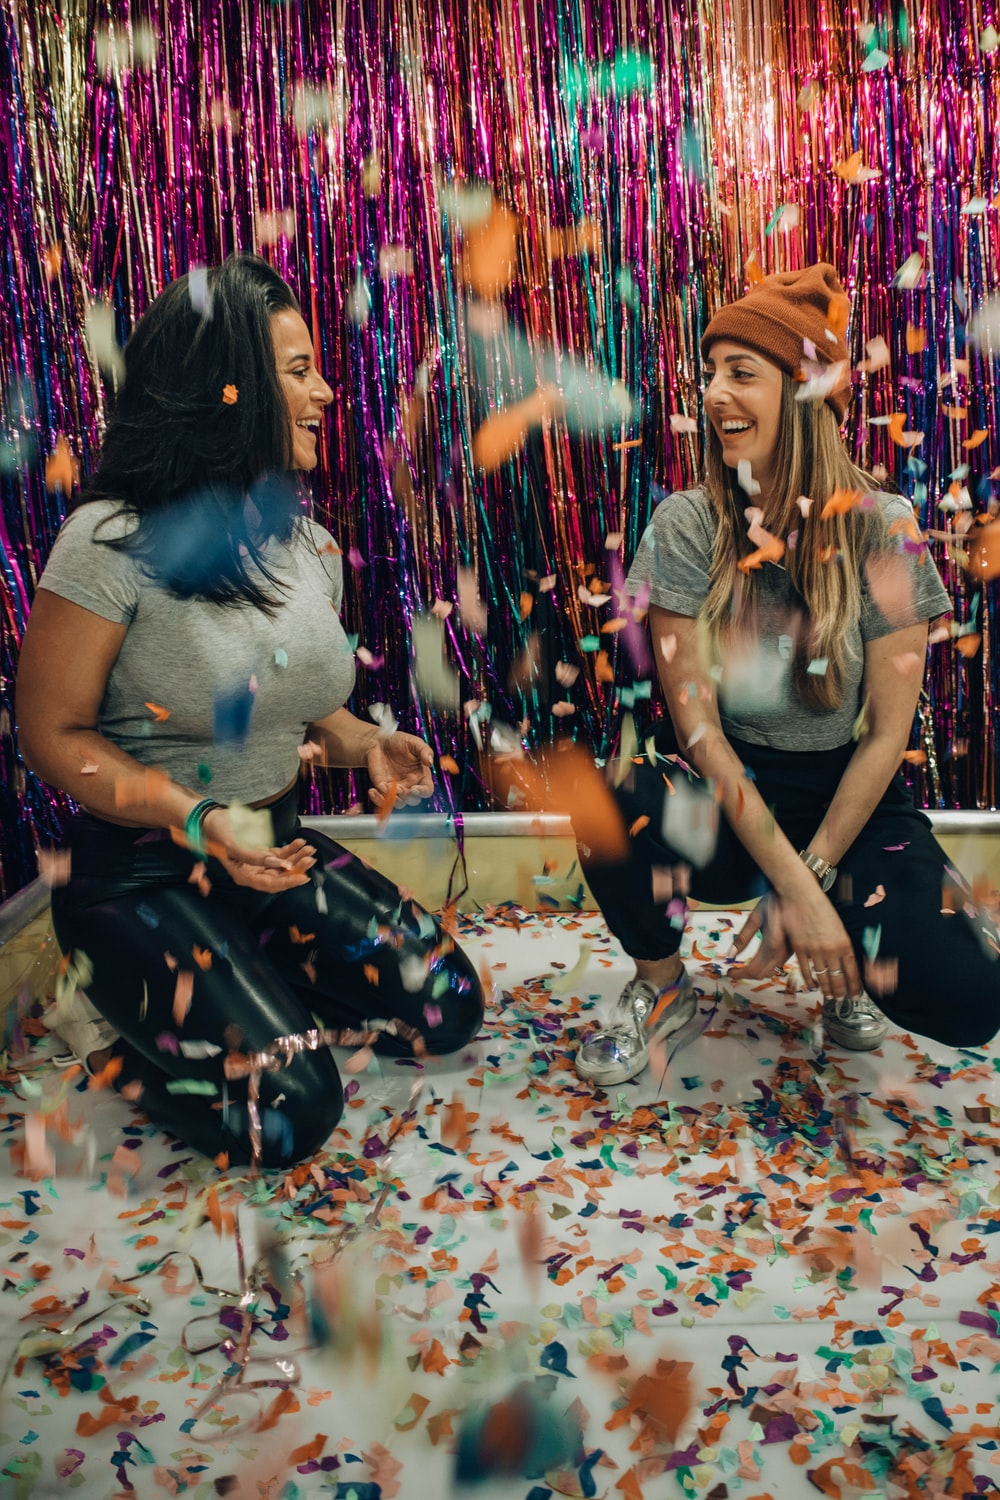 two women kneeling under falling confetti